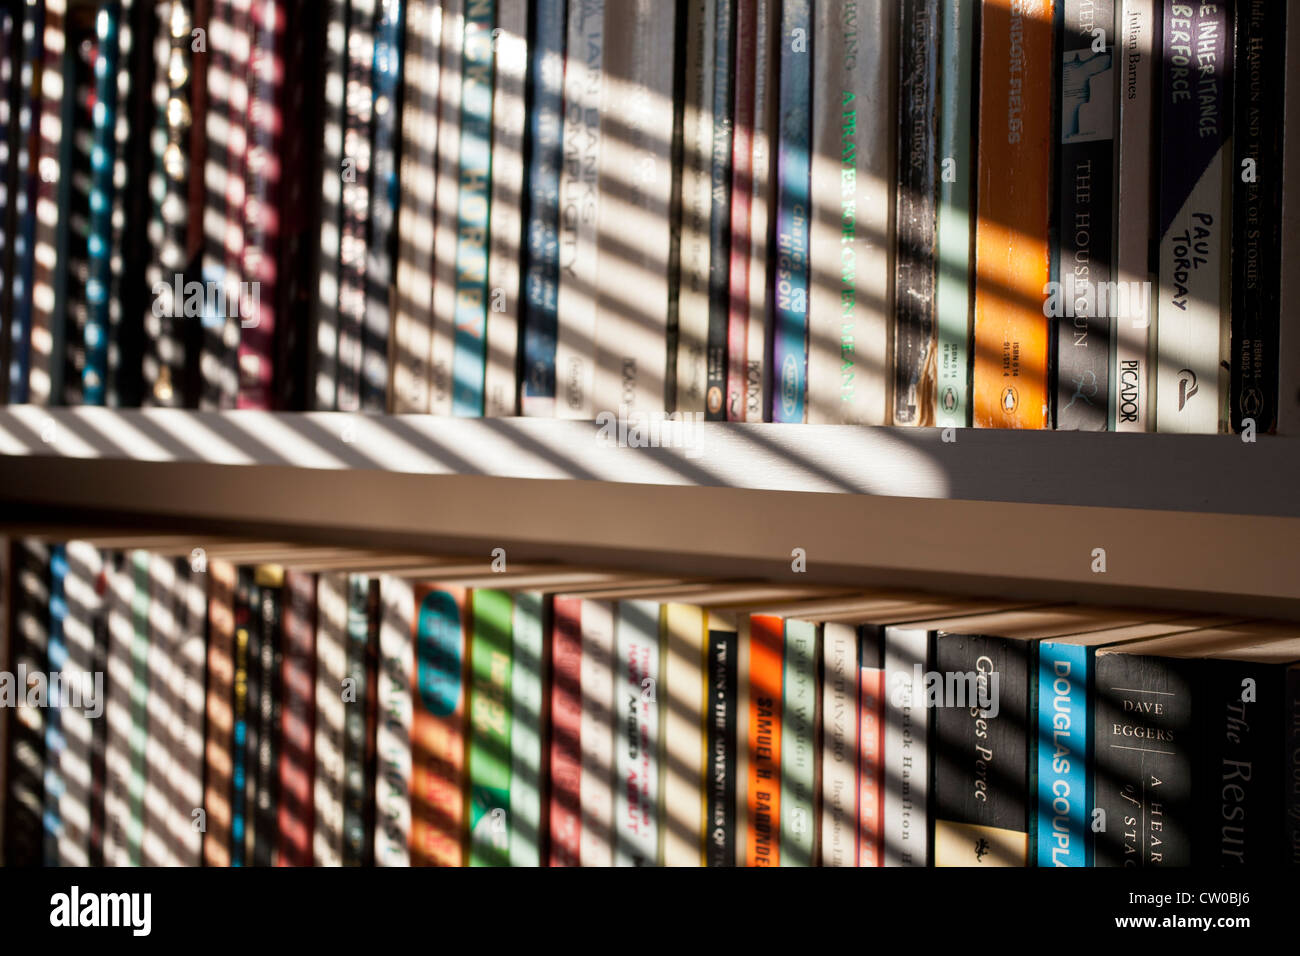 Terrific Paperback Books On Bookshelves With Venetian Blind Shadows Download Free Architecture Designs Embacsunscenecom